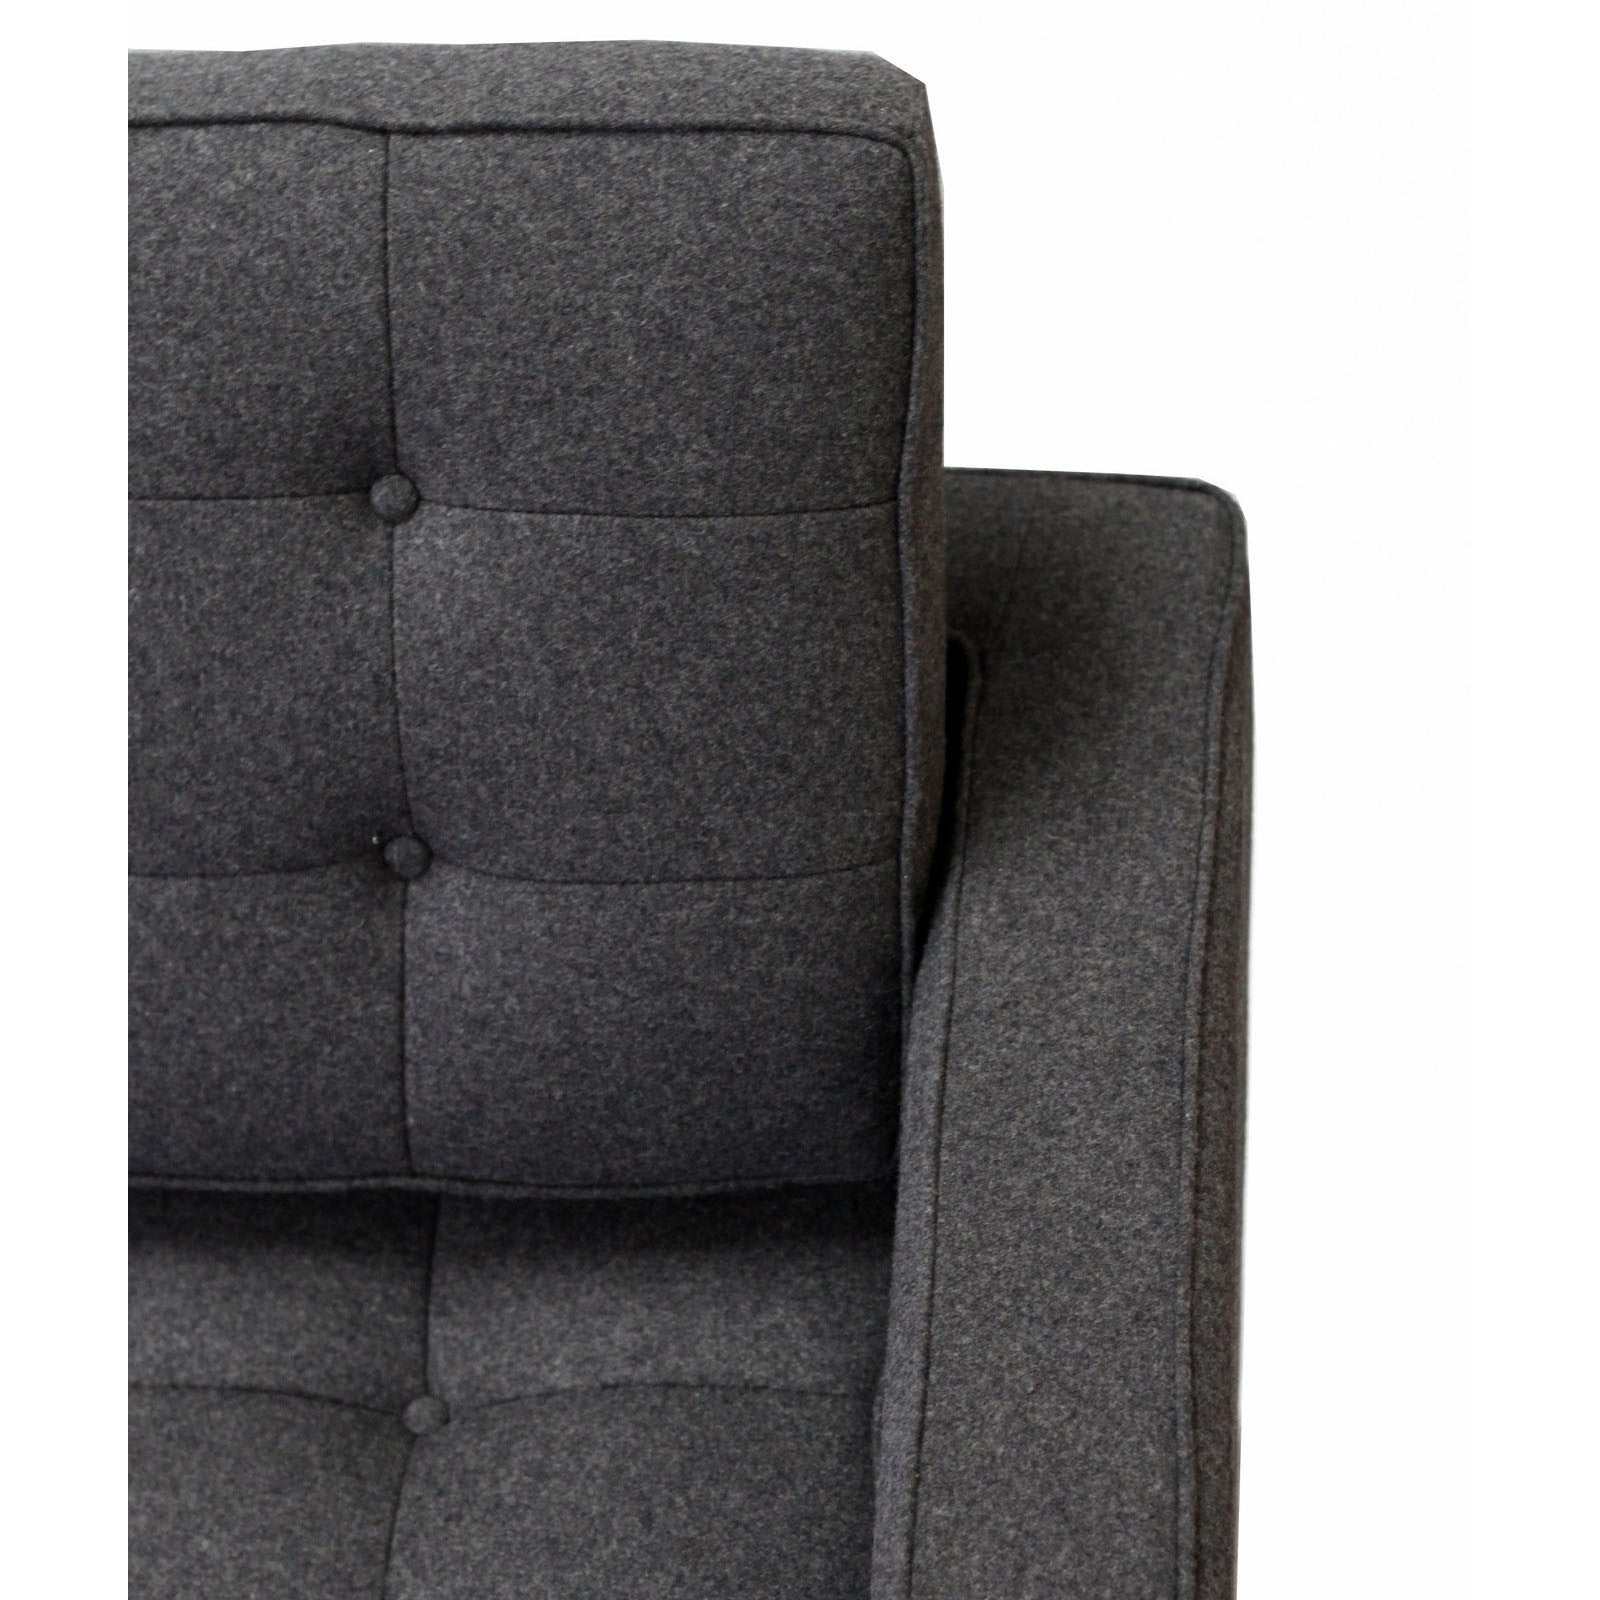 ... Florence Knoll Sofa Reproduction (Fabric)   The Modern Source   3 ...